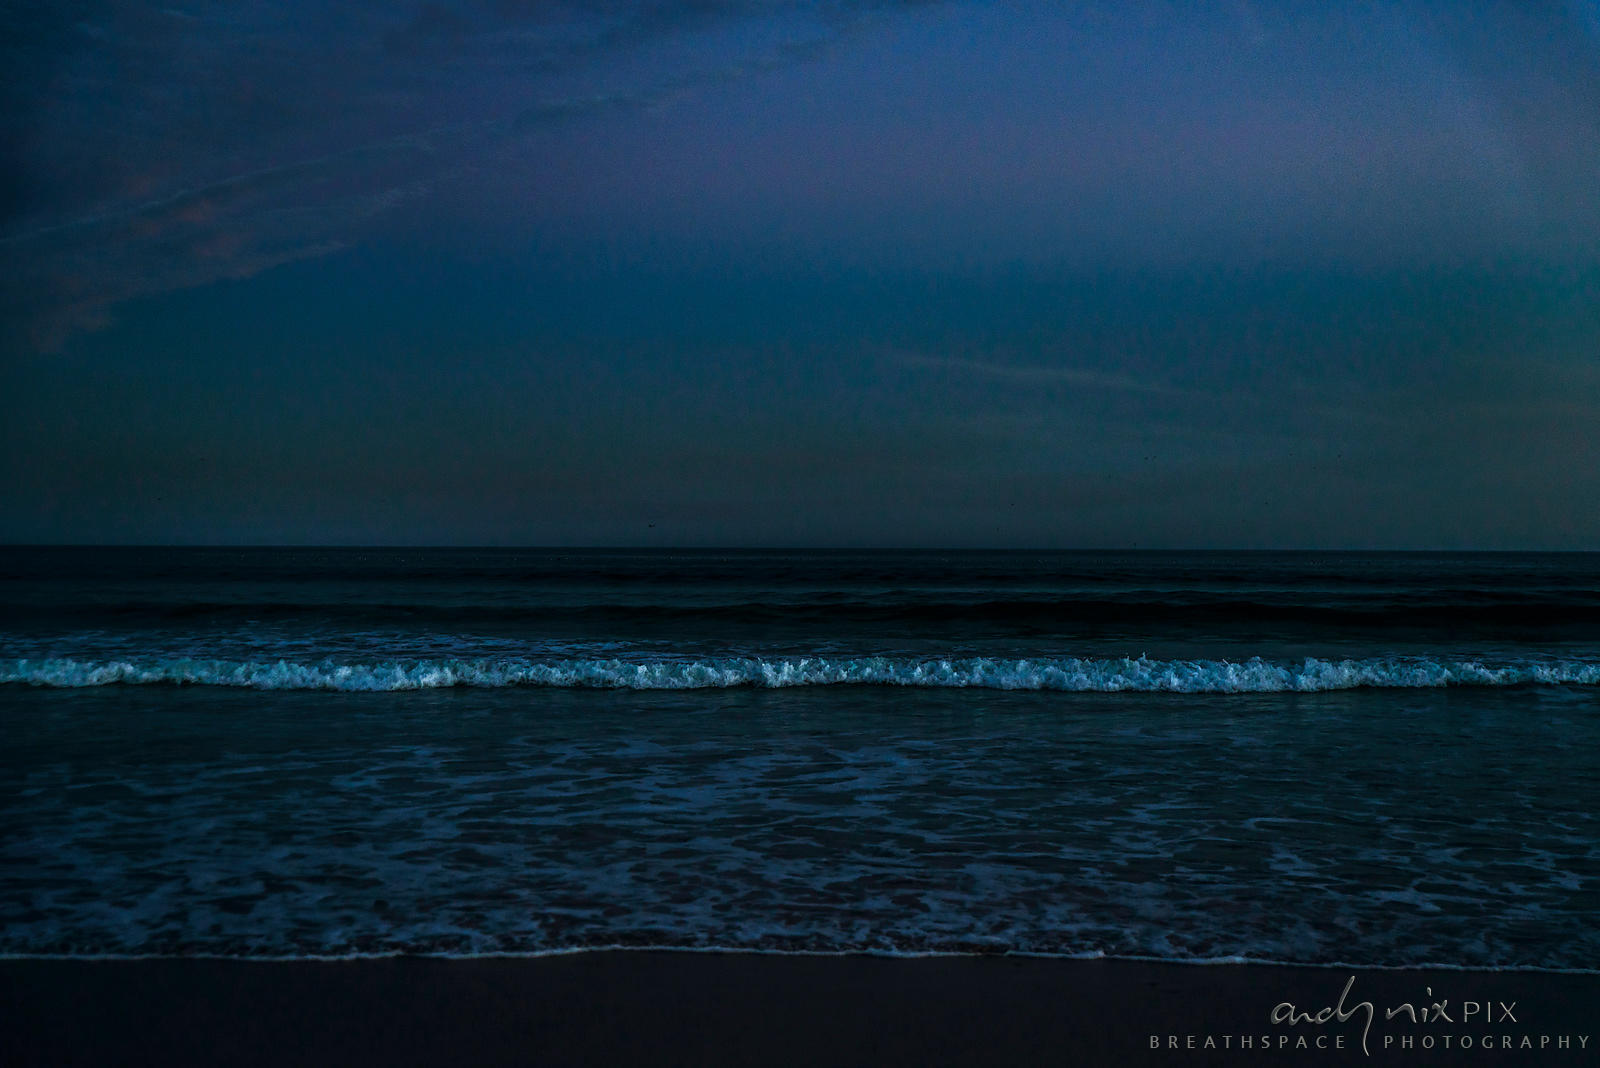 line of waves in the sea at night